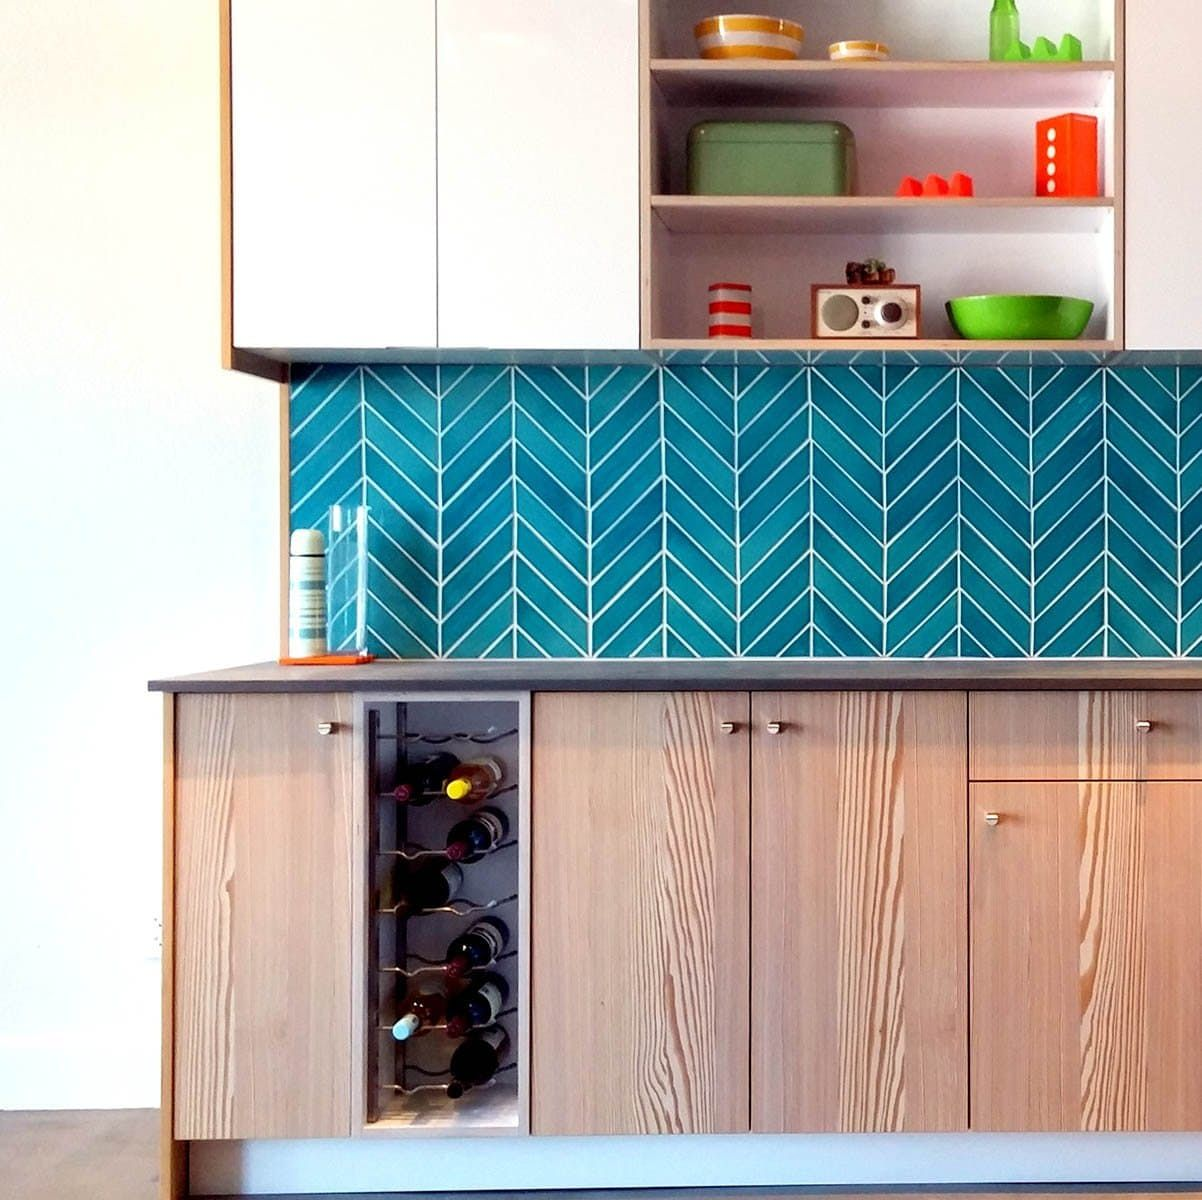 7 Easy Ways to Customize Your IKEA: No Hacking Required | House ...